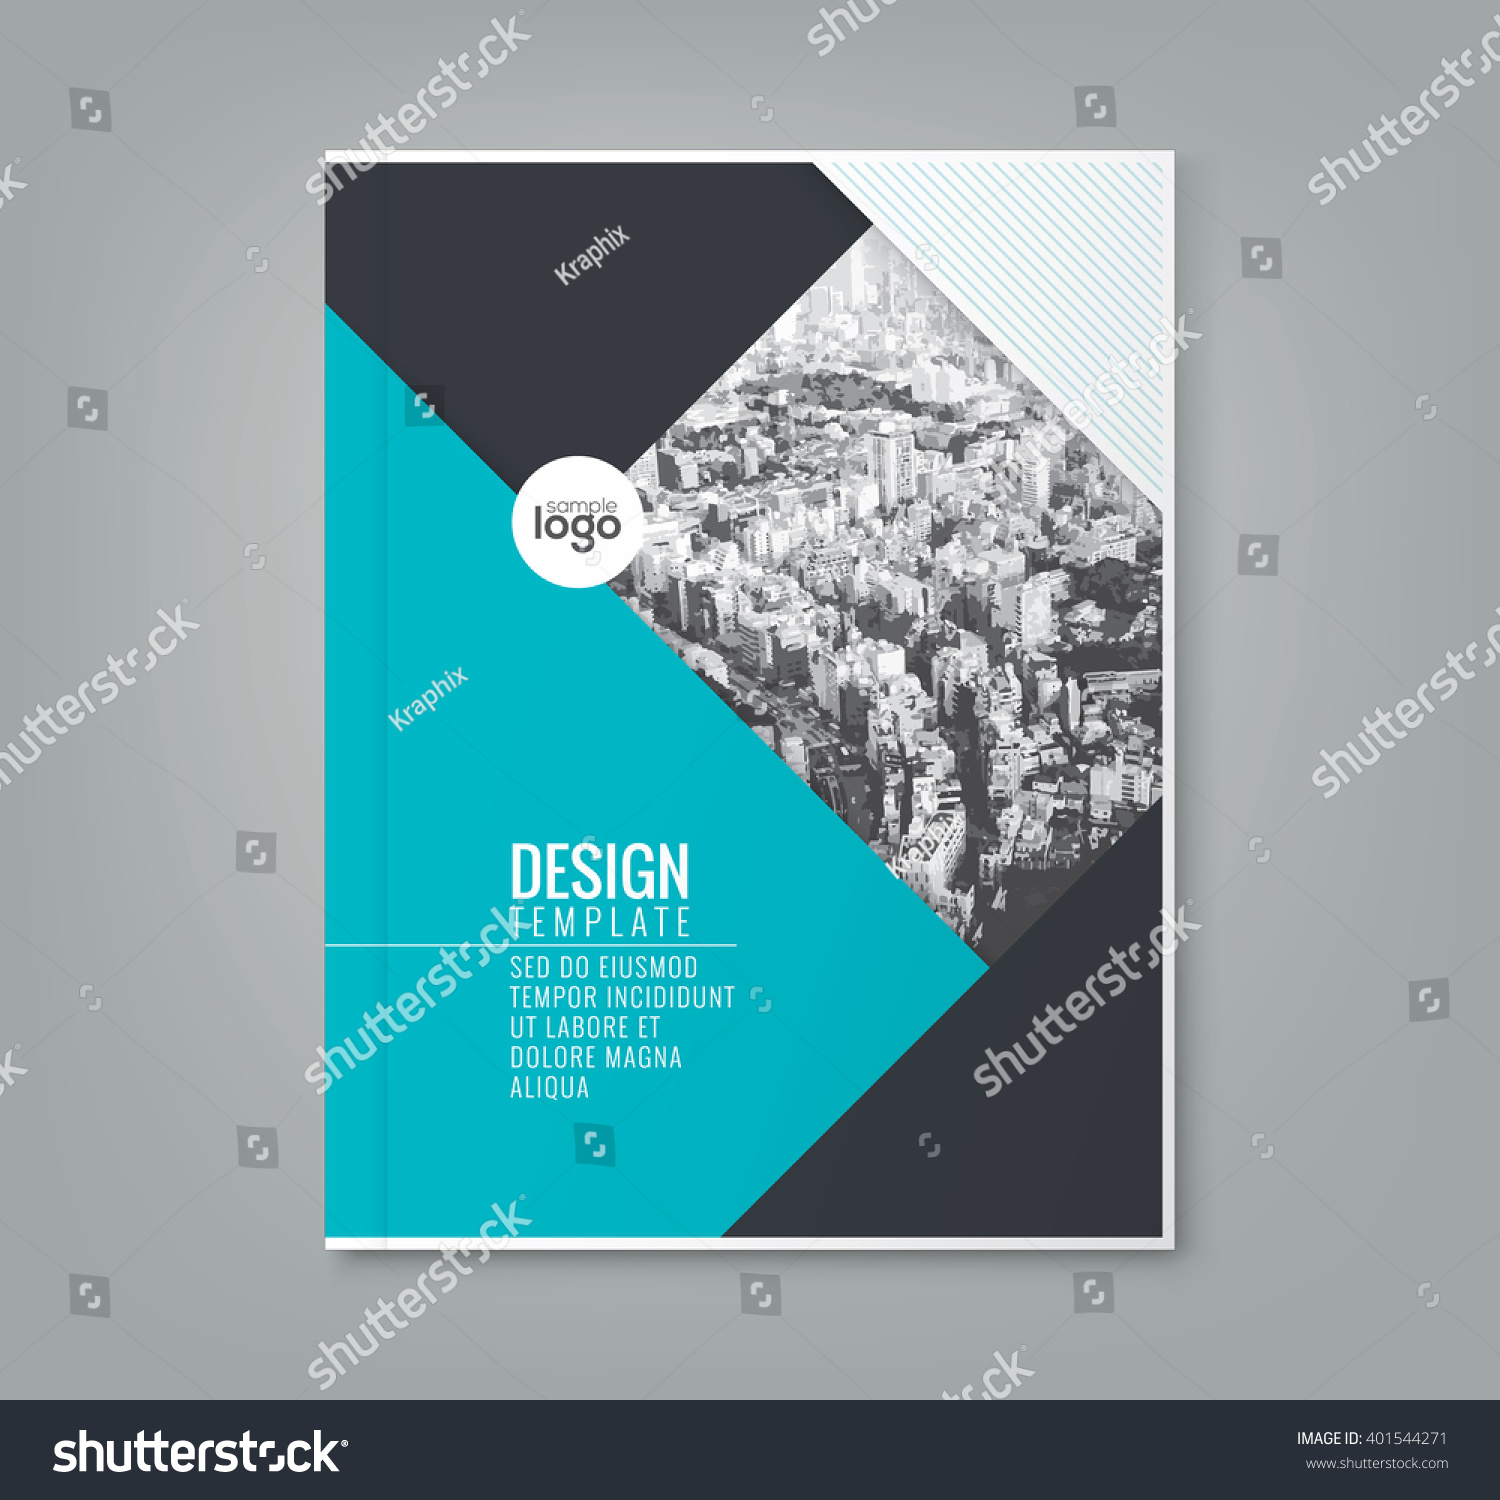 Simple Book Cover Design Template : Minimal simple blue color design template stock vector